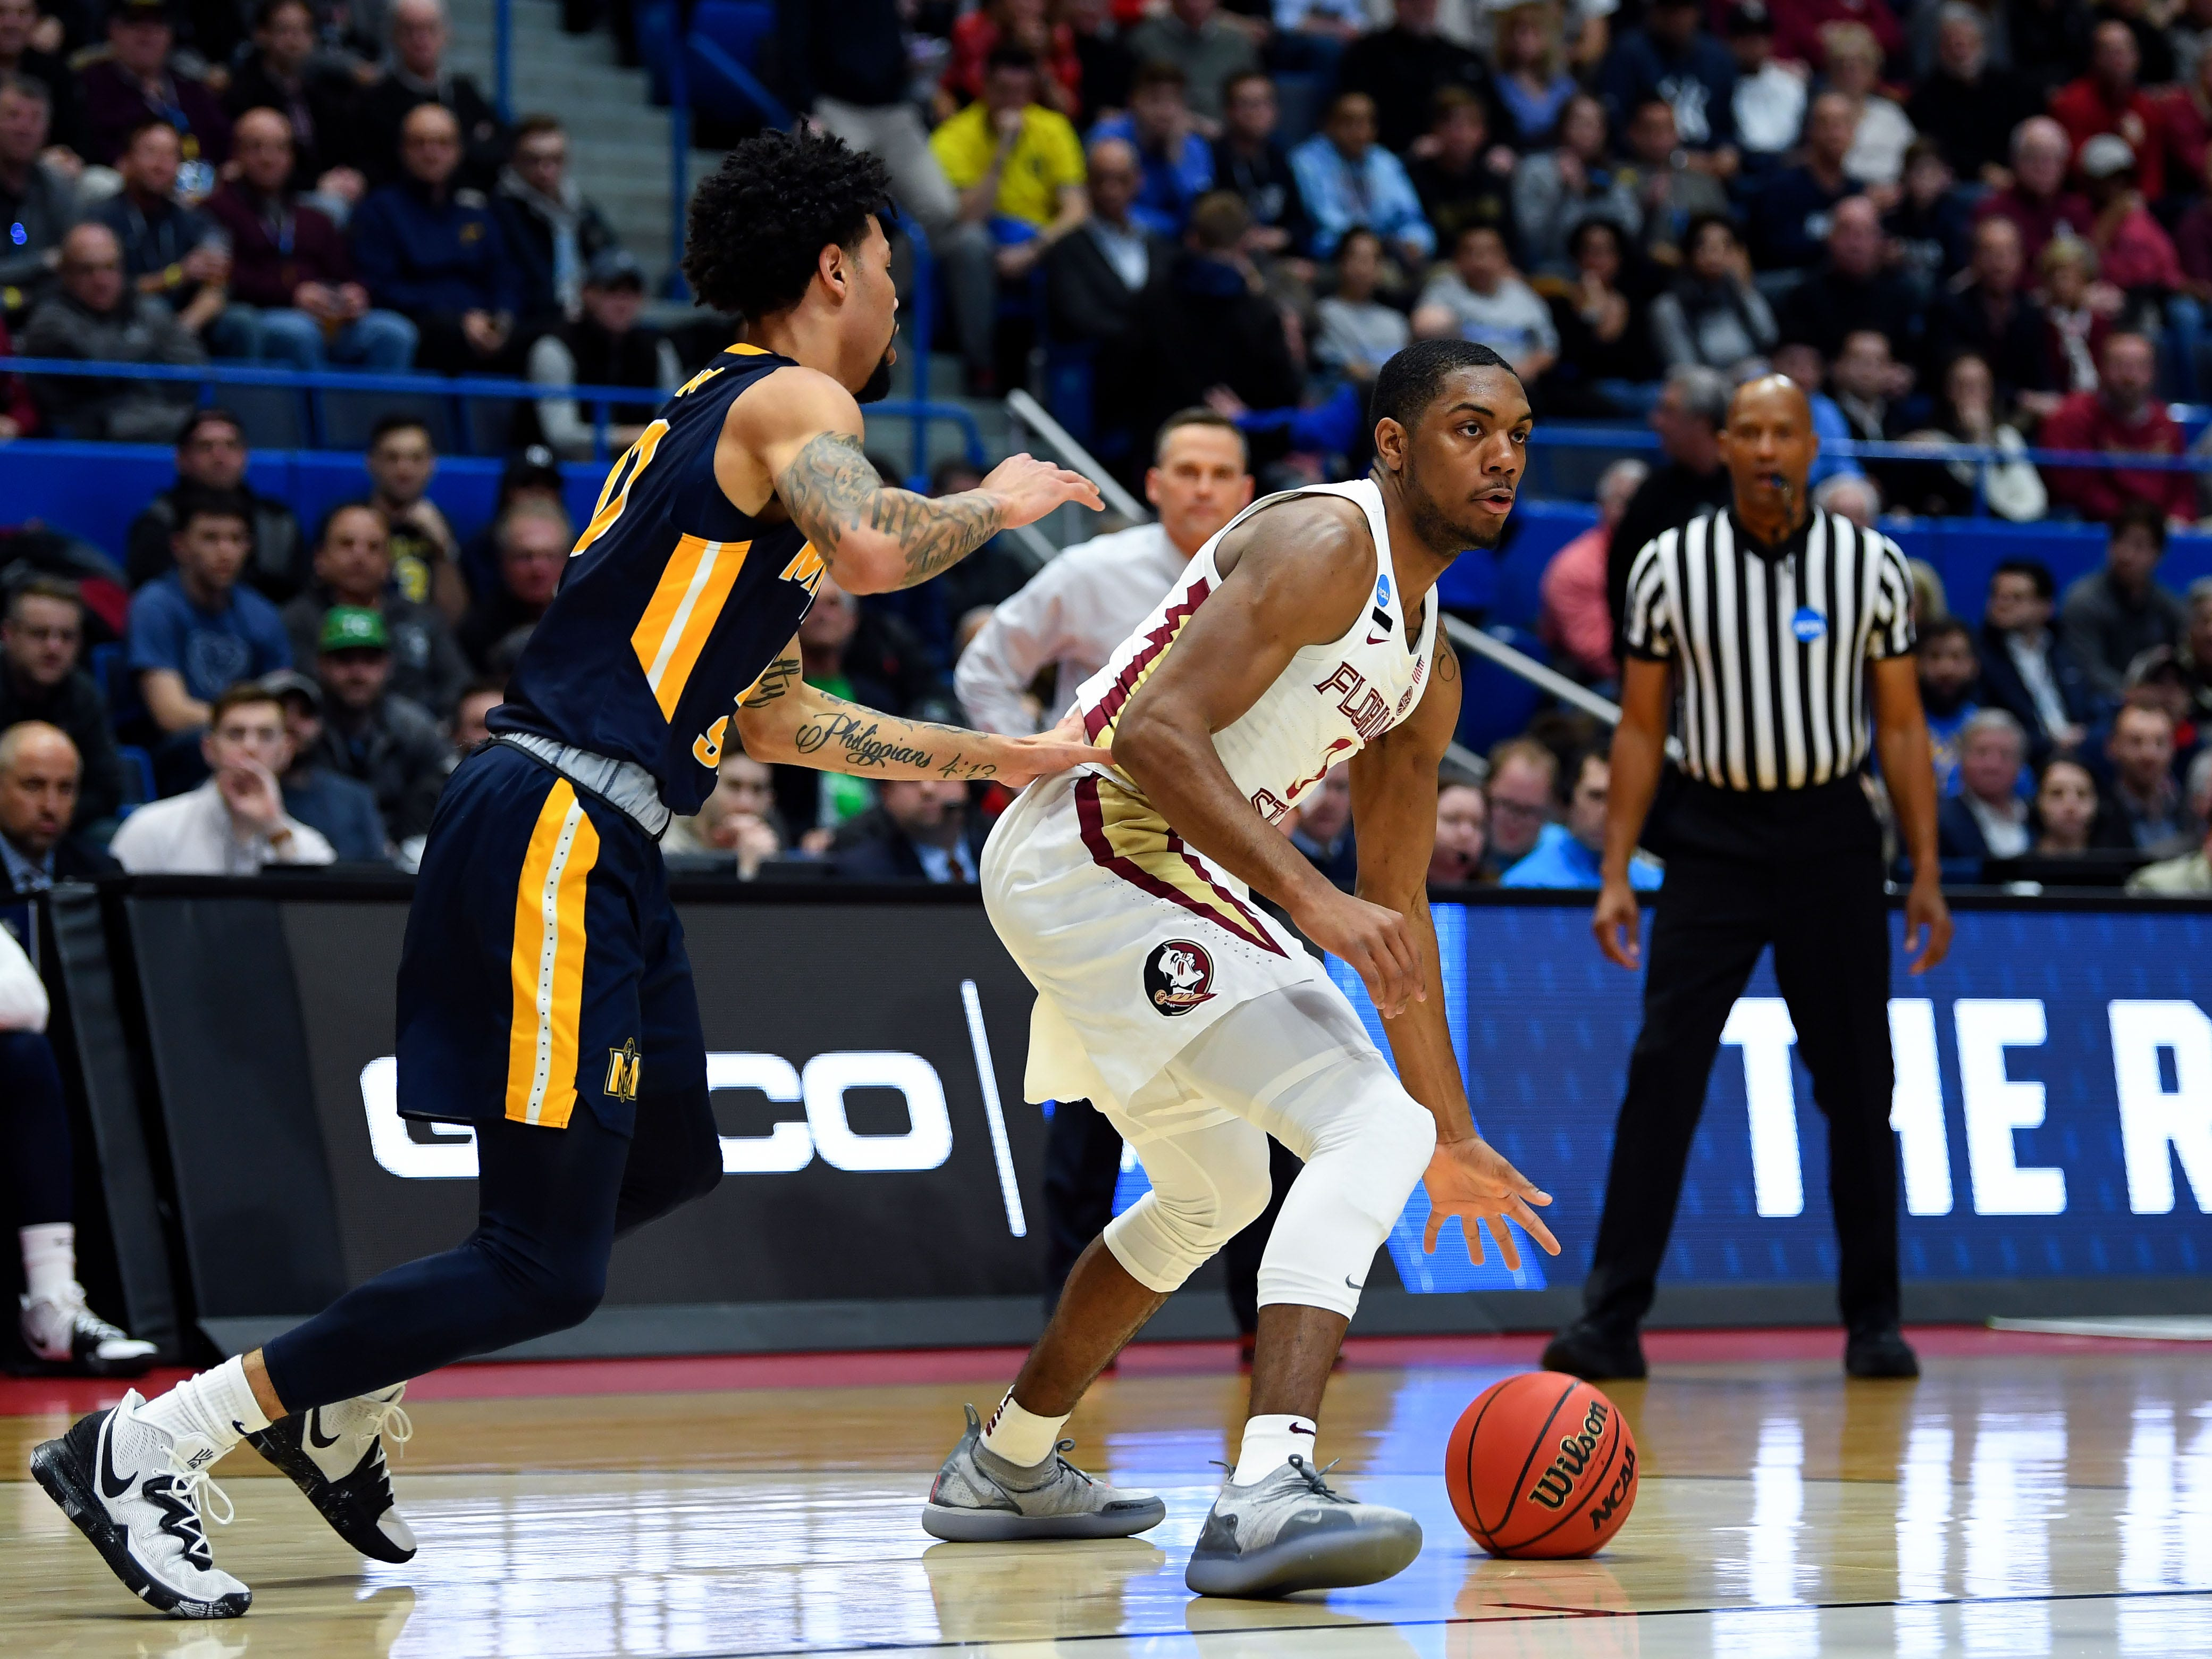 Mar 23, 2019; Hartford, CT, USA; Florida State Seminoles guard Trent Forrest (3) controls the ball against Murray State Racers guard Tevin Brown (10) during the first half of a game in the second round of the 2019 NCAA Tournament at XL Center. Mandatory Credit: Robert Deutsch-USA TODAY Sports